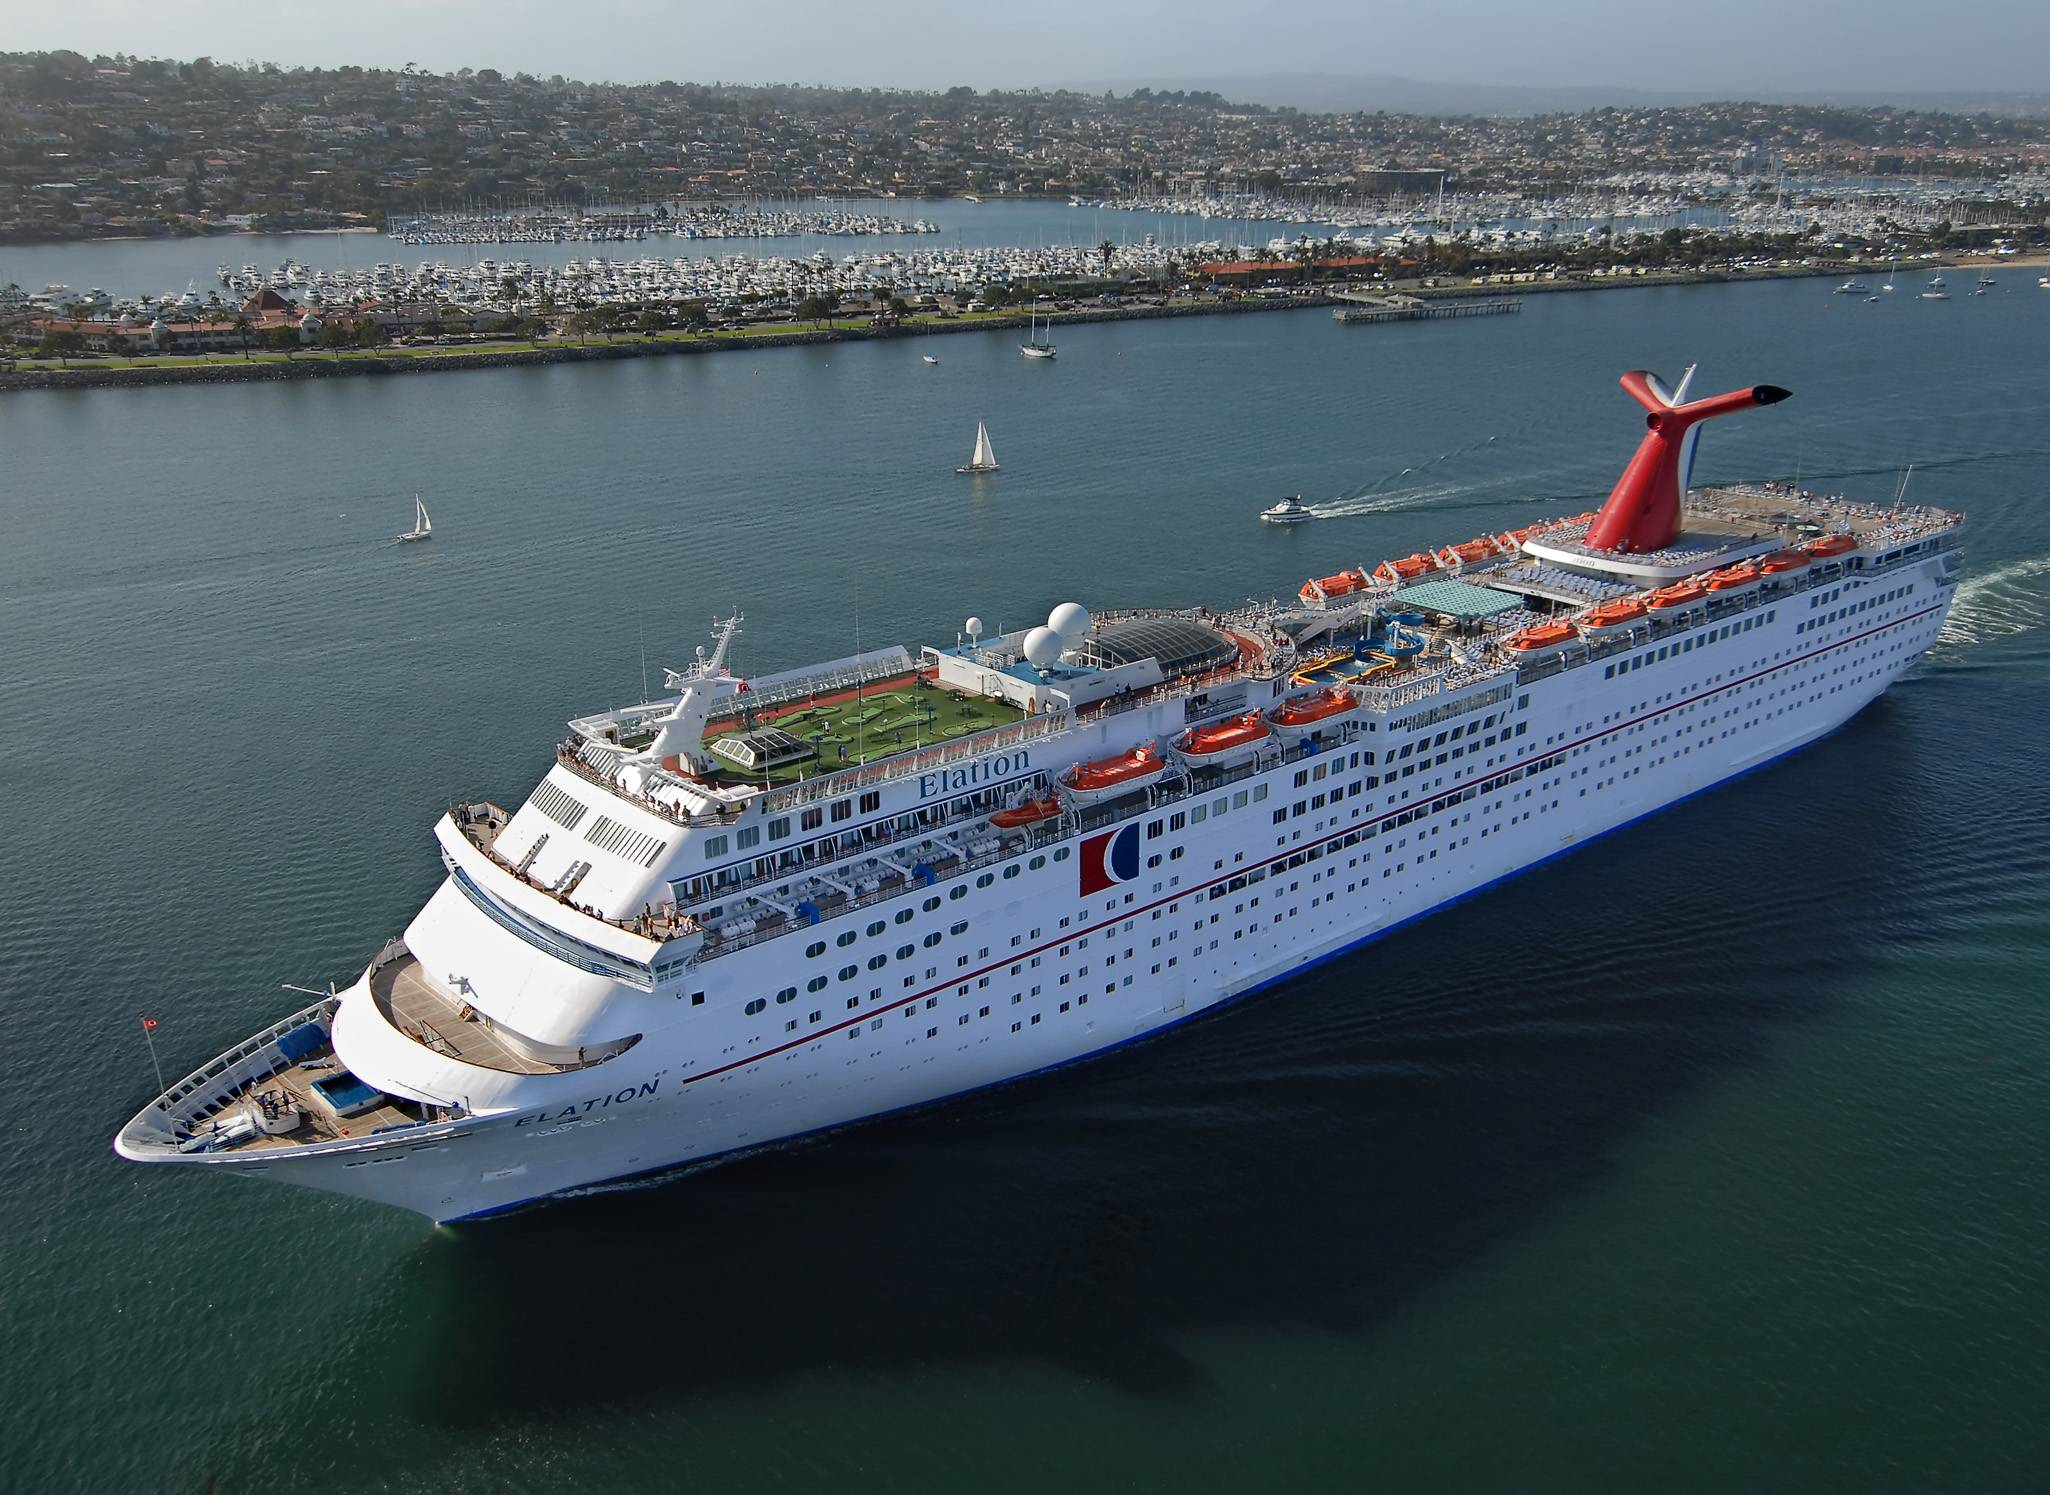 Carnival will dispatch a fourth ship to China next April, escalating the battle for passengers in the fastest-growing cruise market.